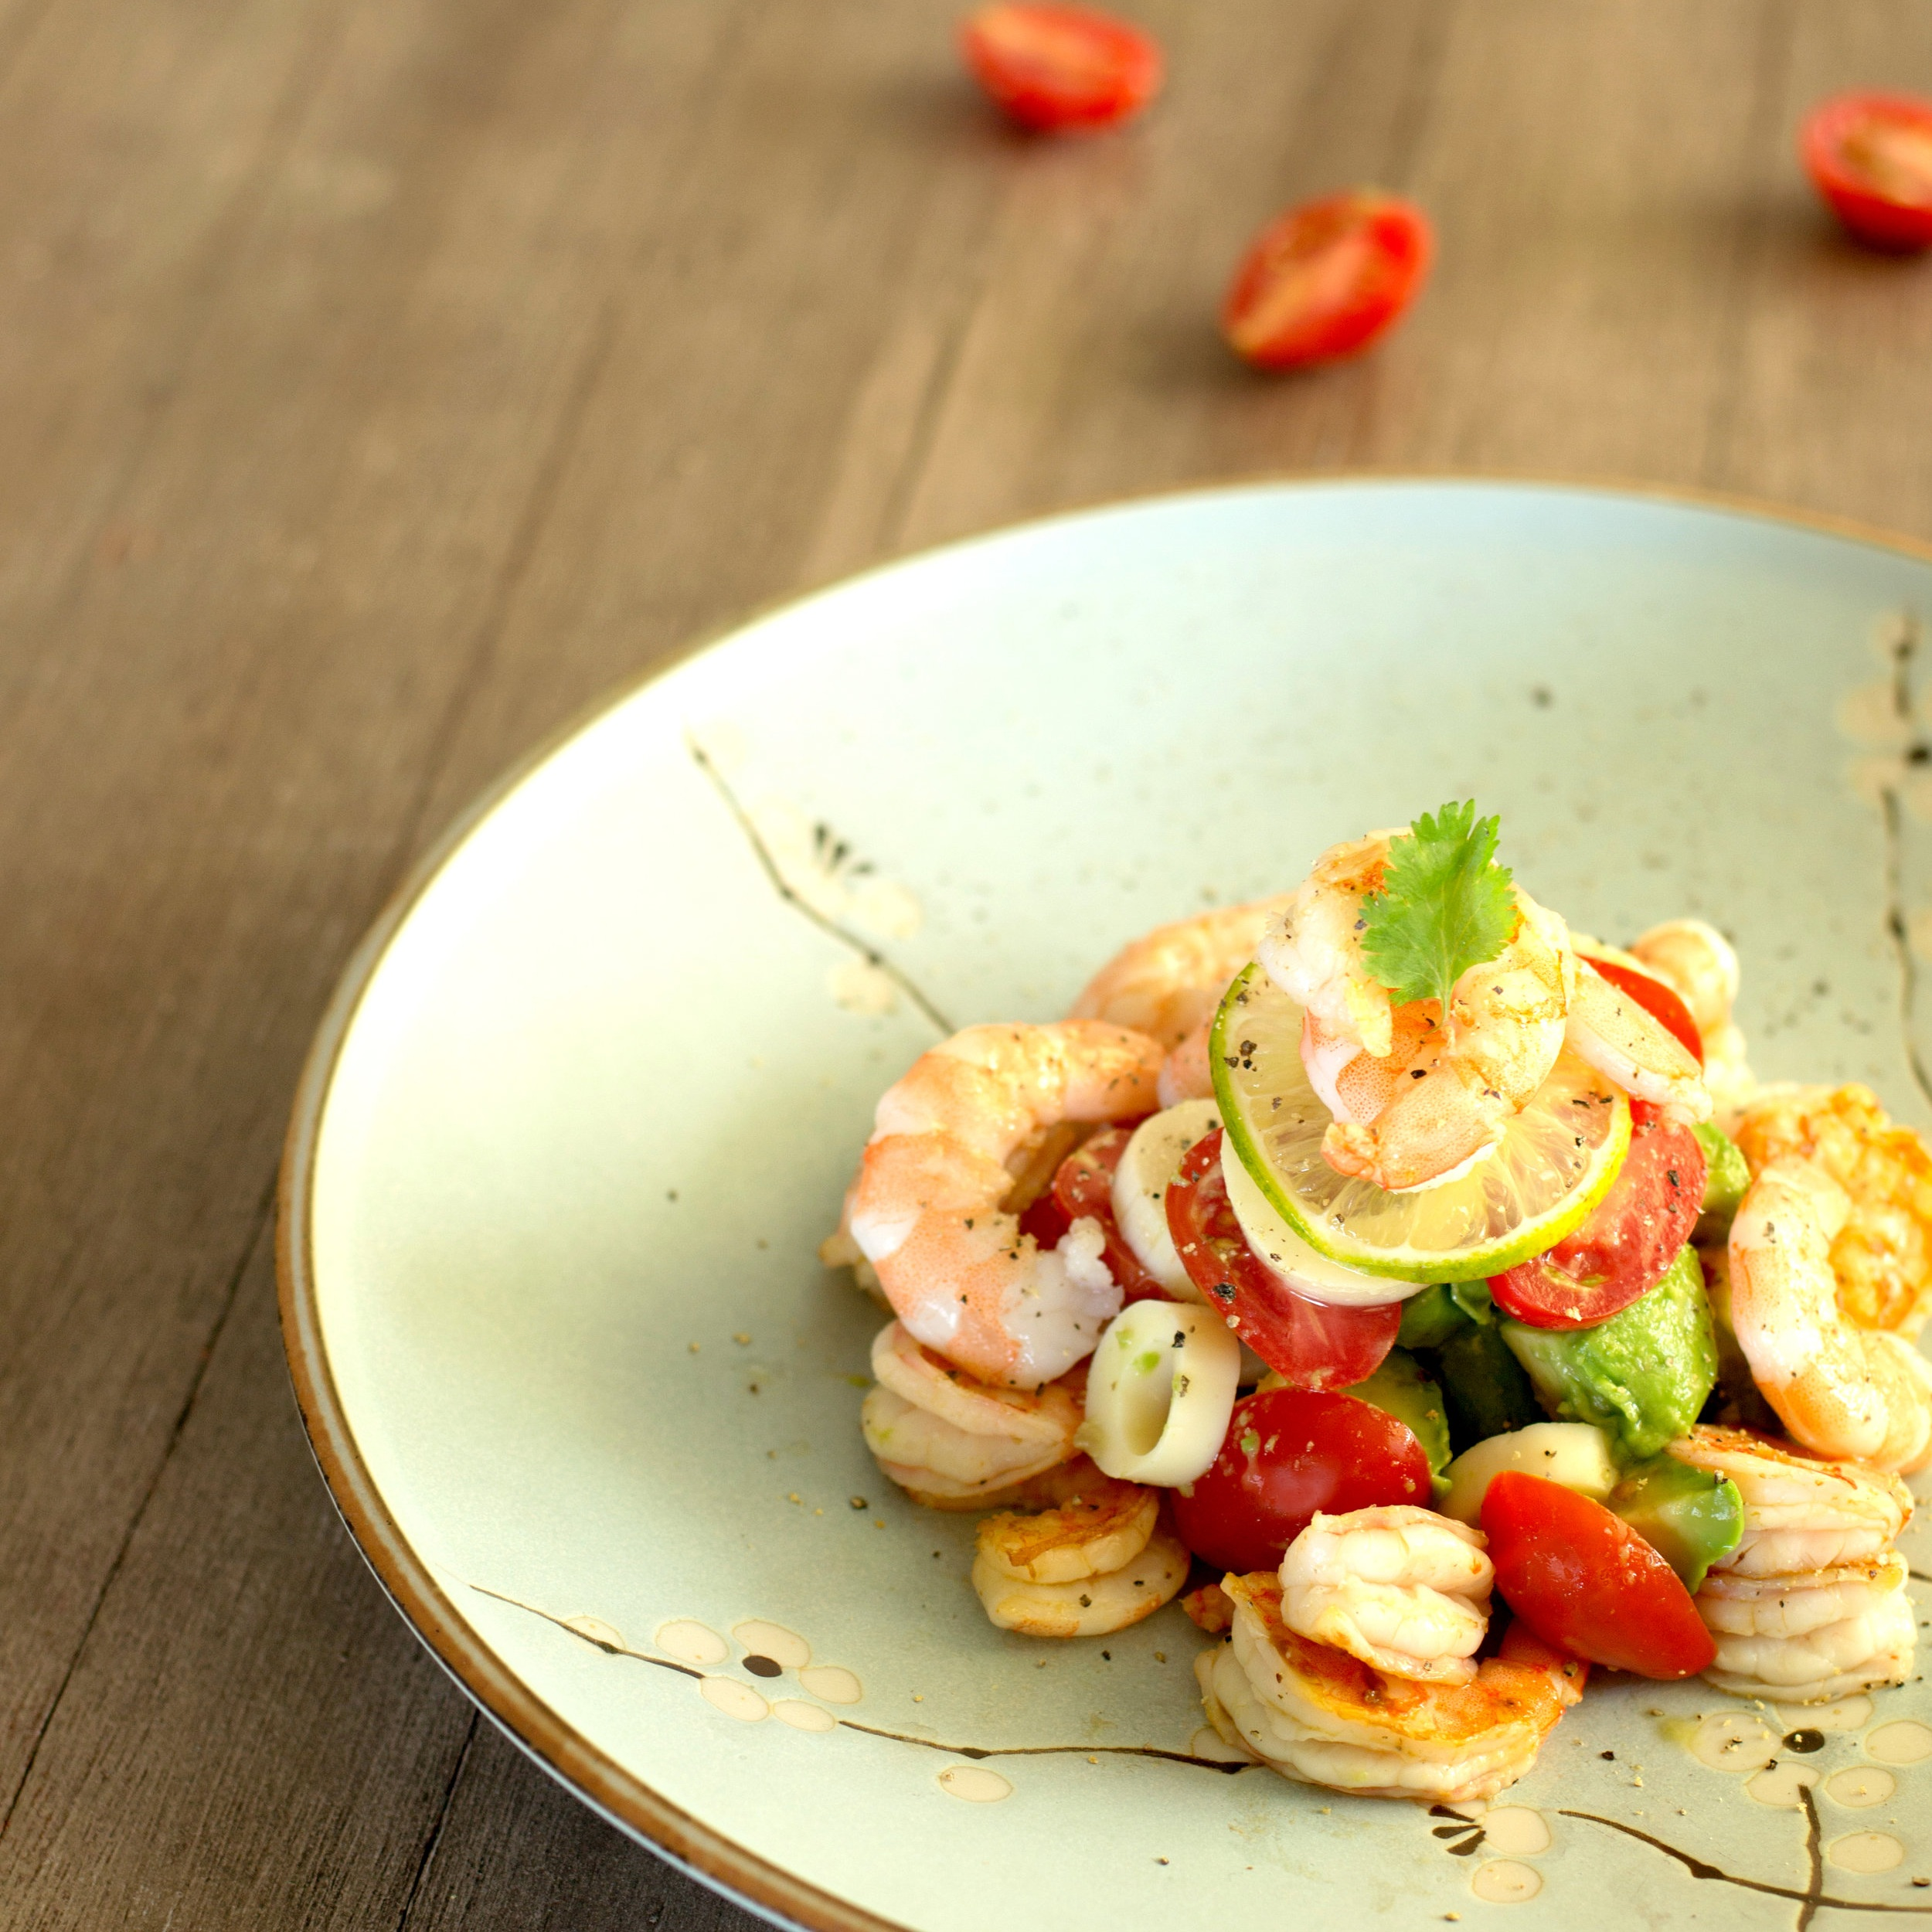 Delicious Summer Cilantro Lime Shrimp Salad